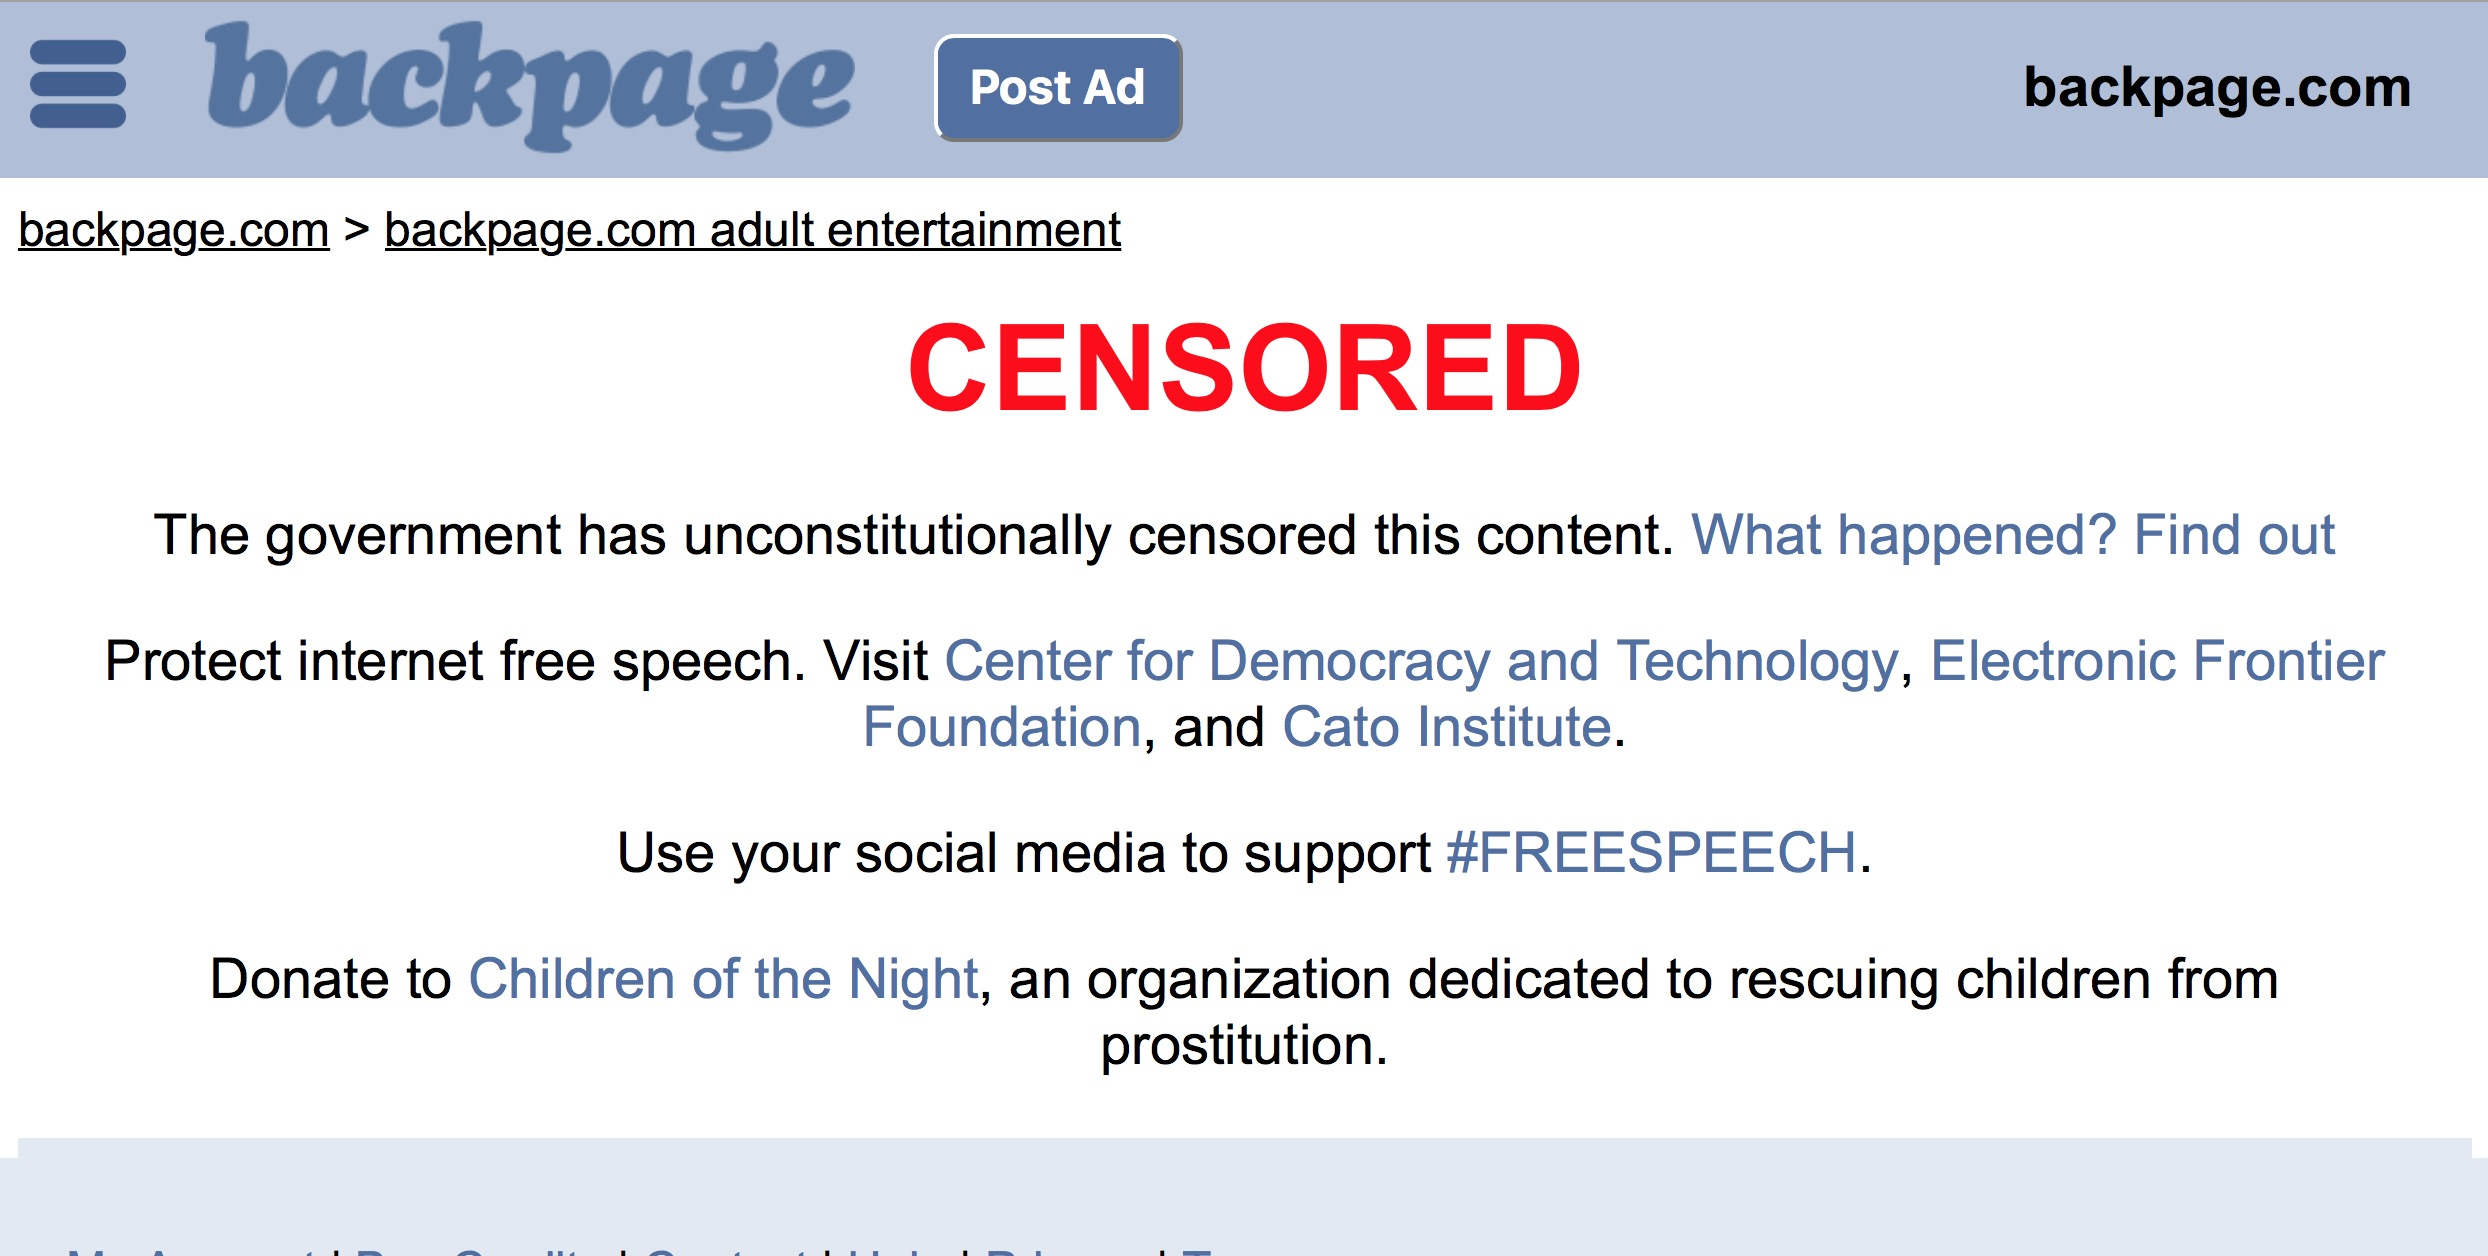 Backpage.com Removes Adult Content Due to Unconstitutional Government Censorship....Vows to Fight First Amendment Battles